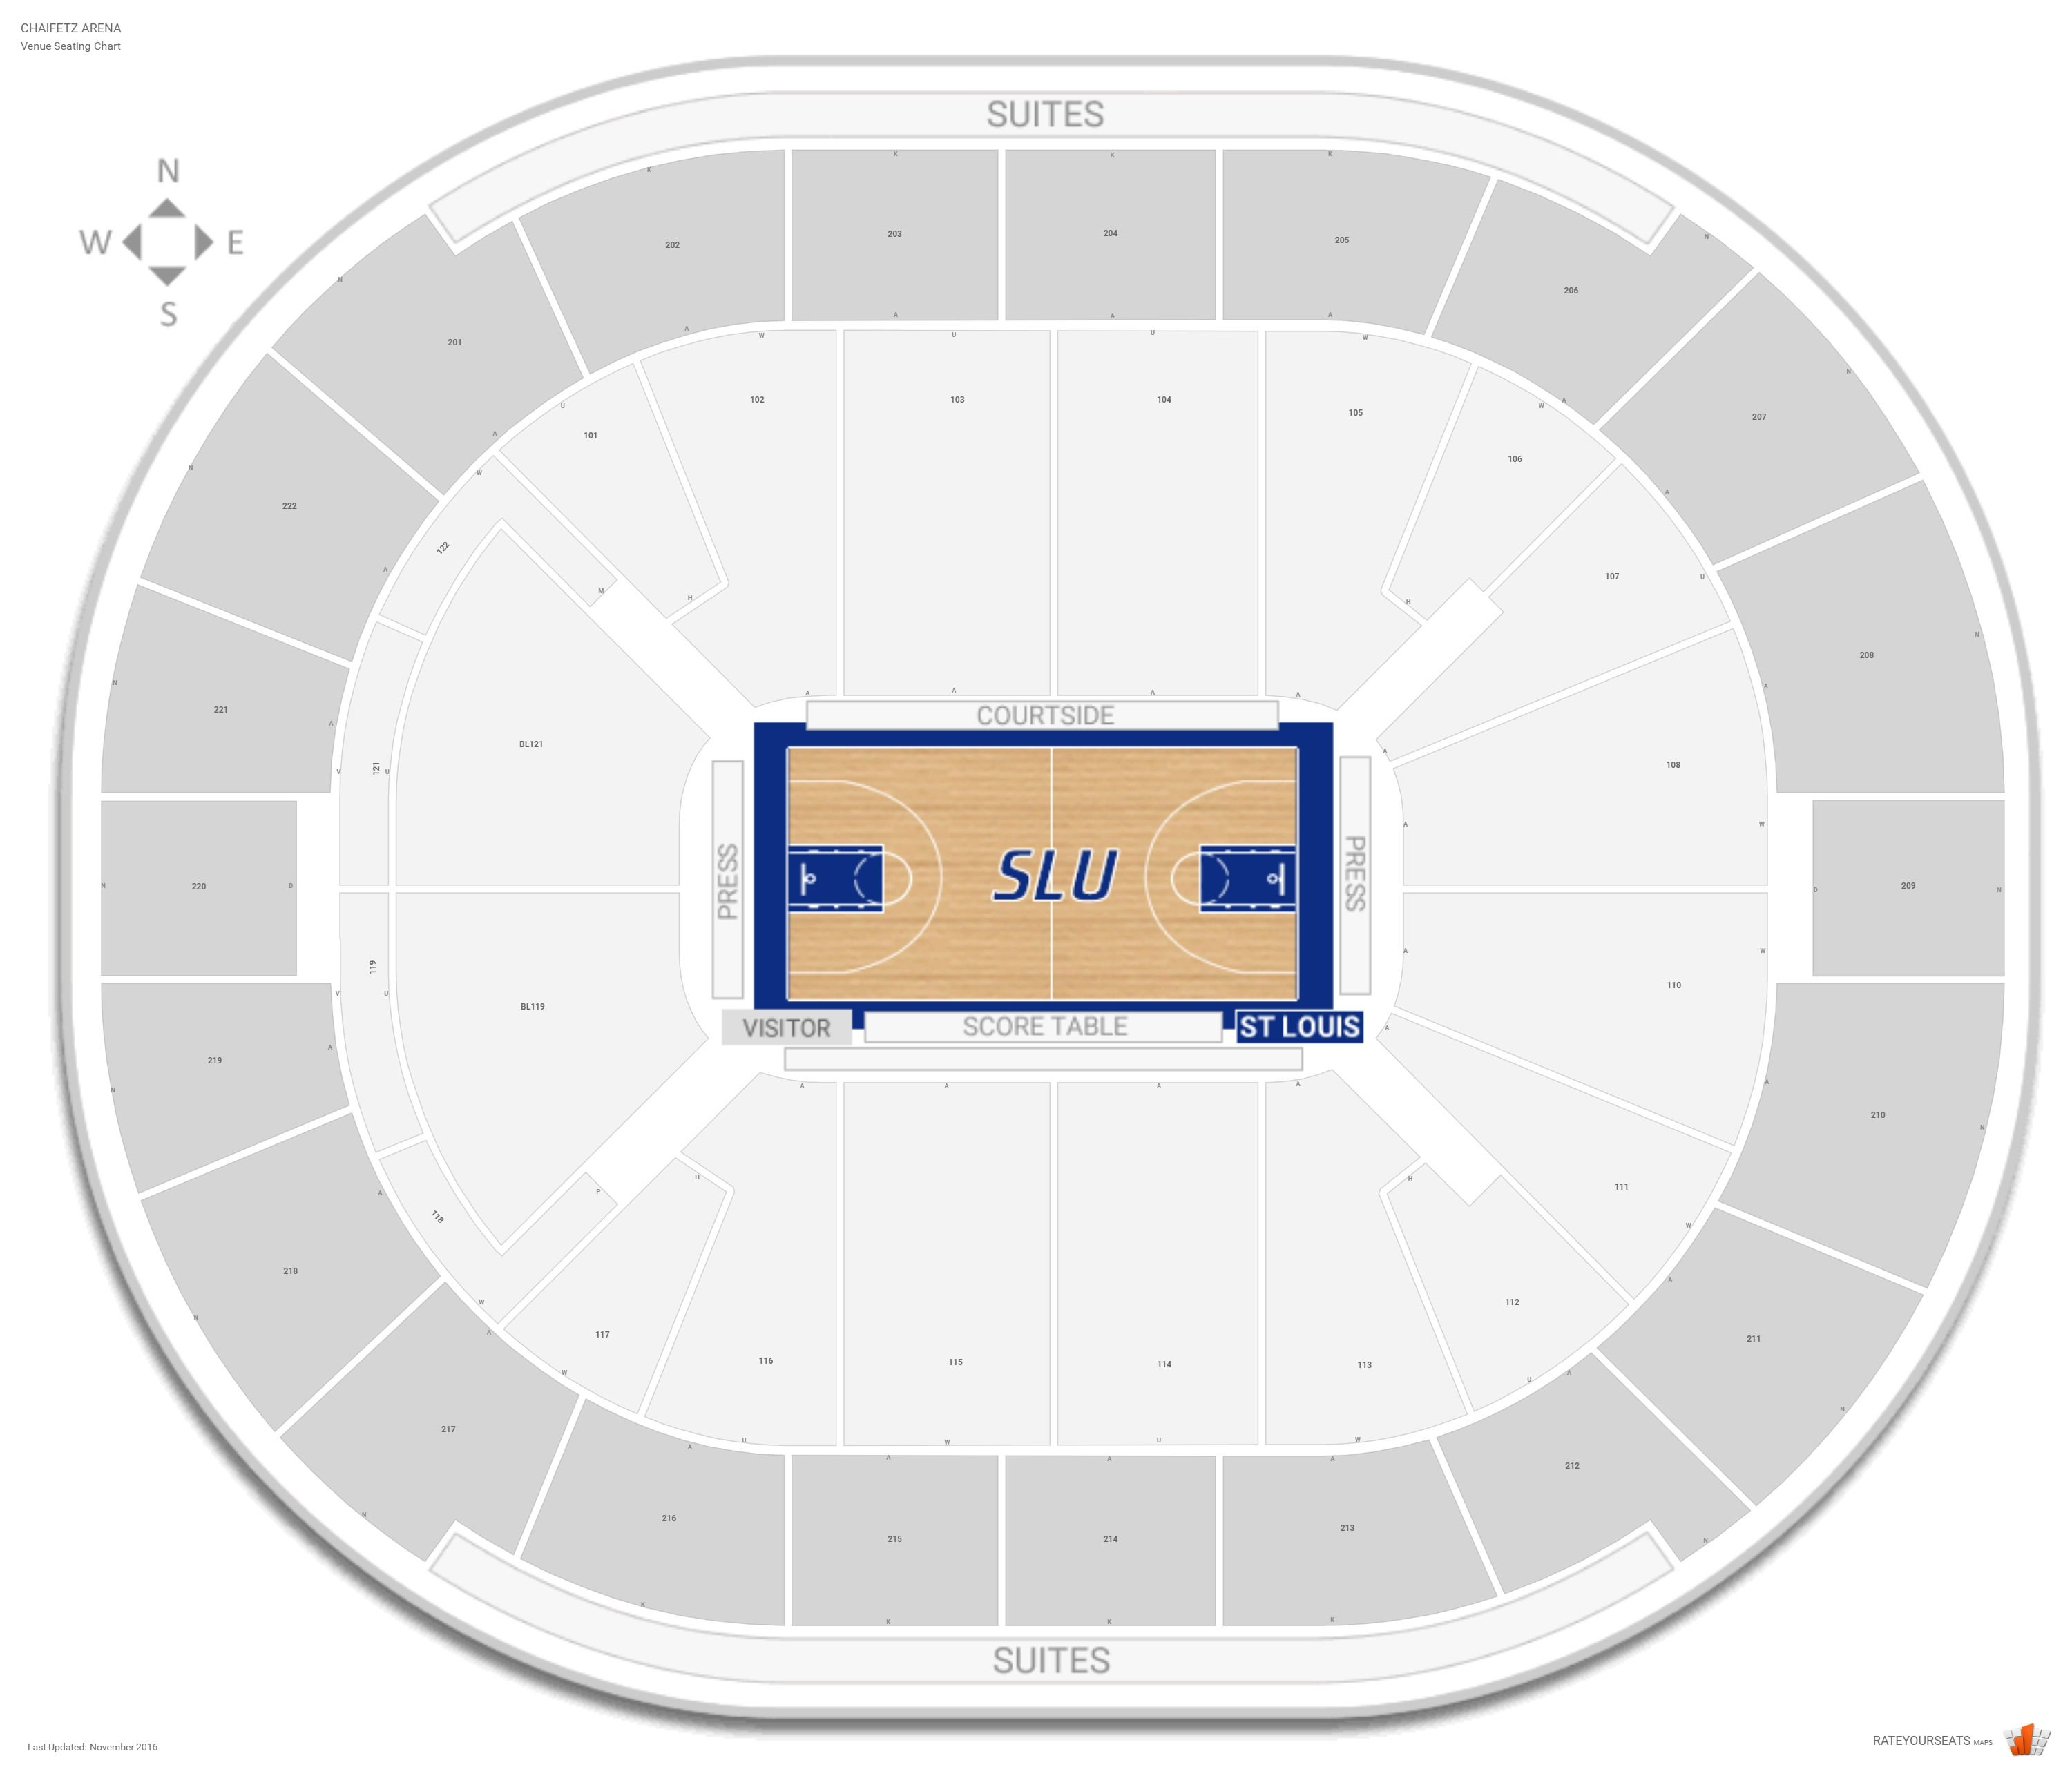 Chaifetz arena saint louis seating guide rateyourseats com